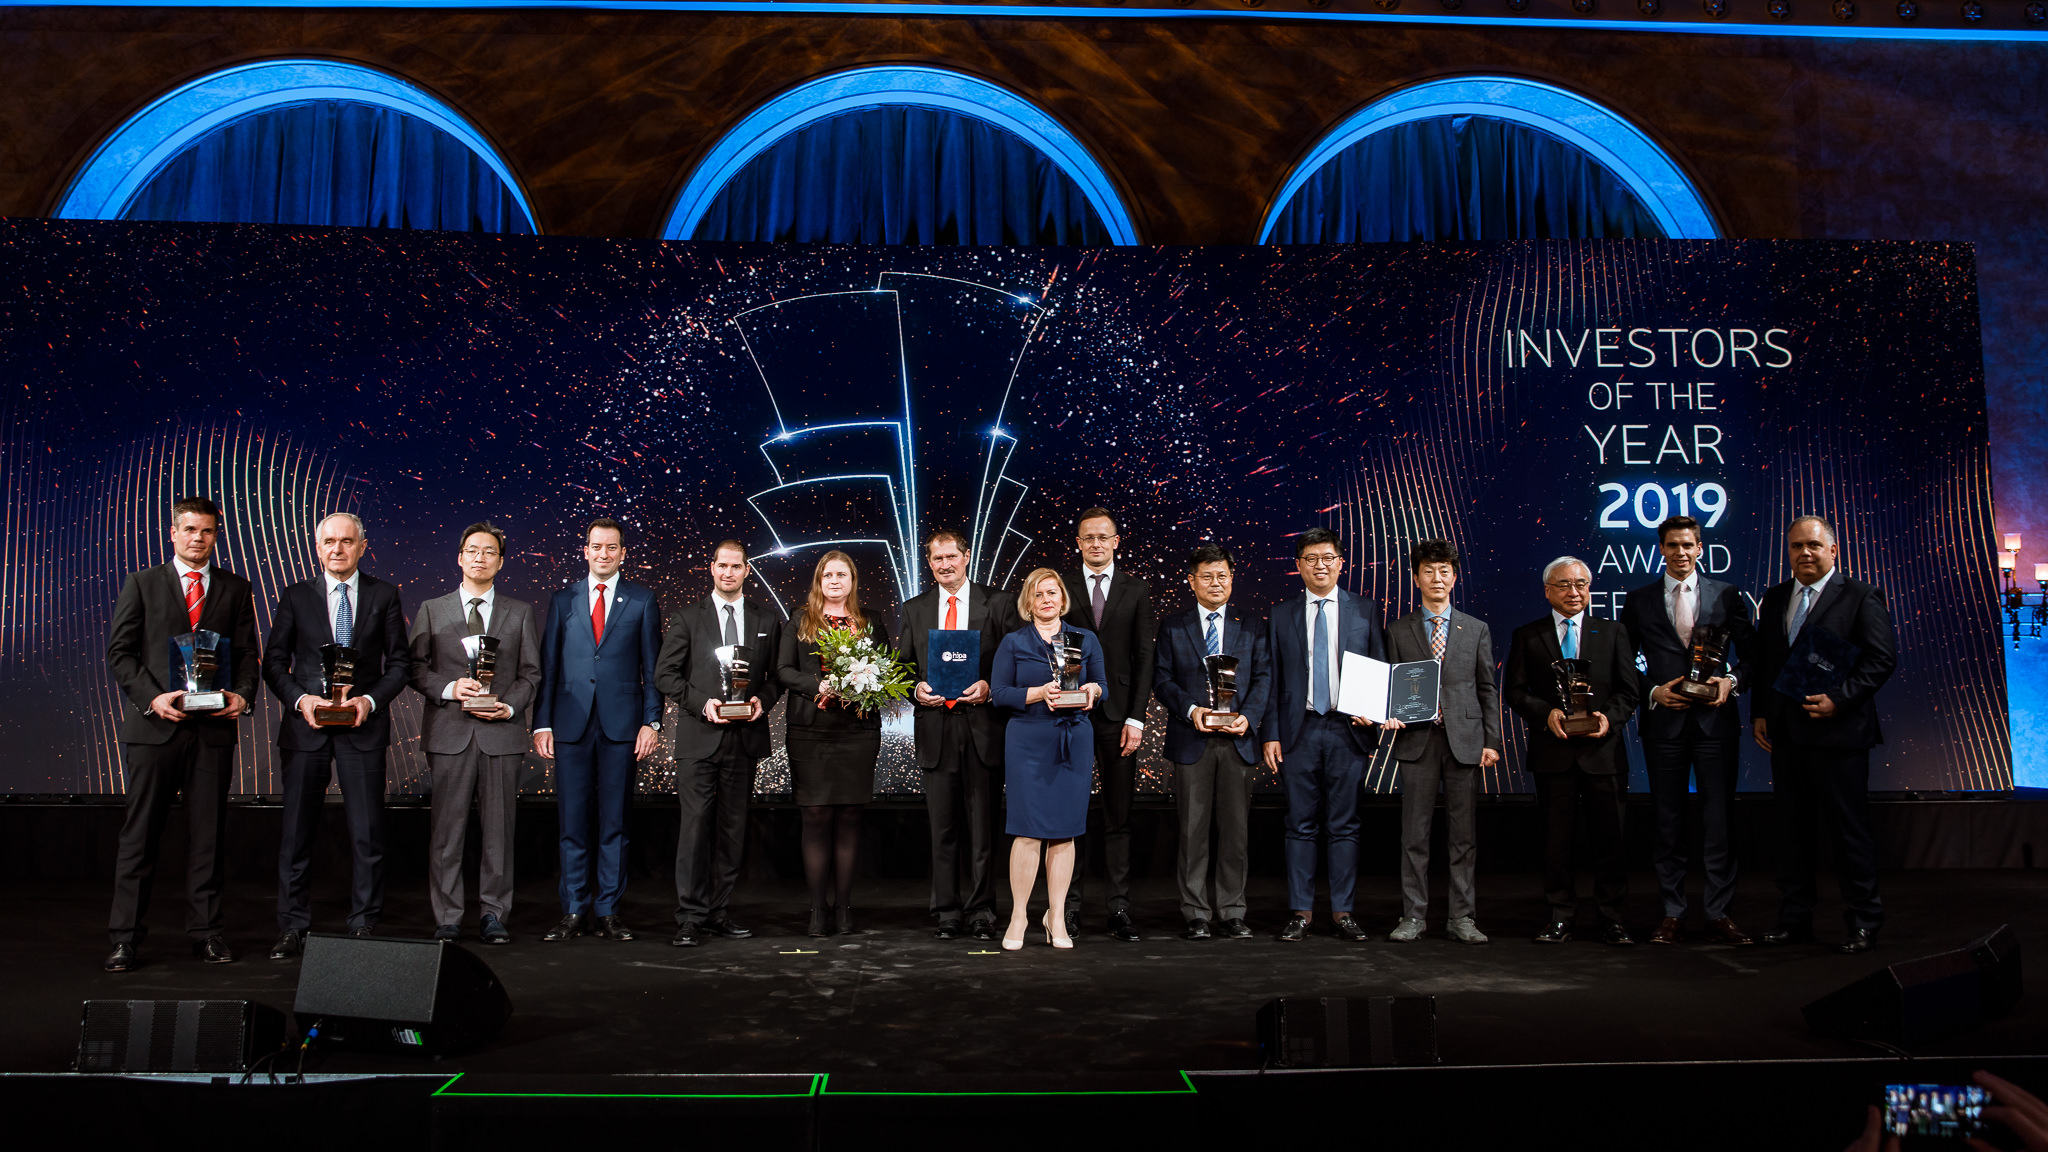 The most prominent investors of 2019 have been honoured in eight categories